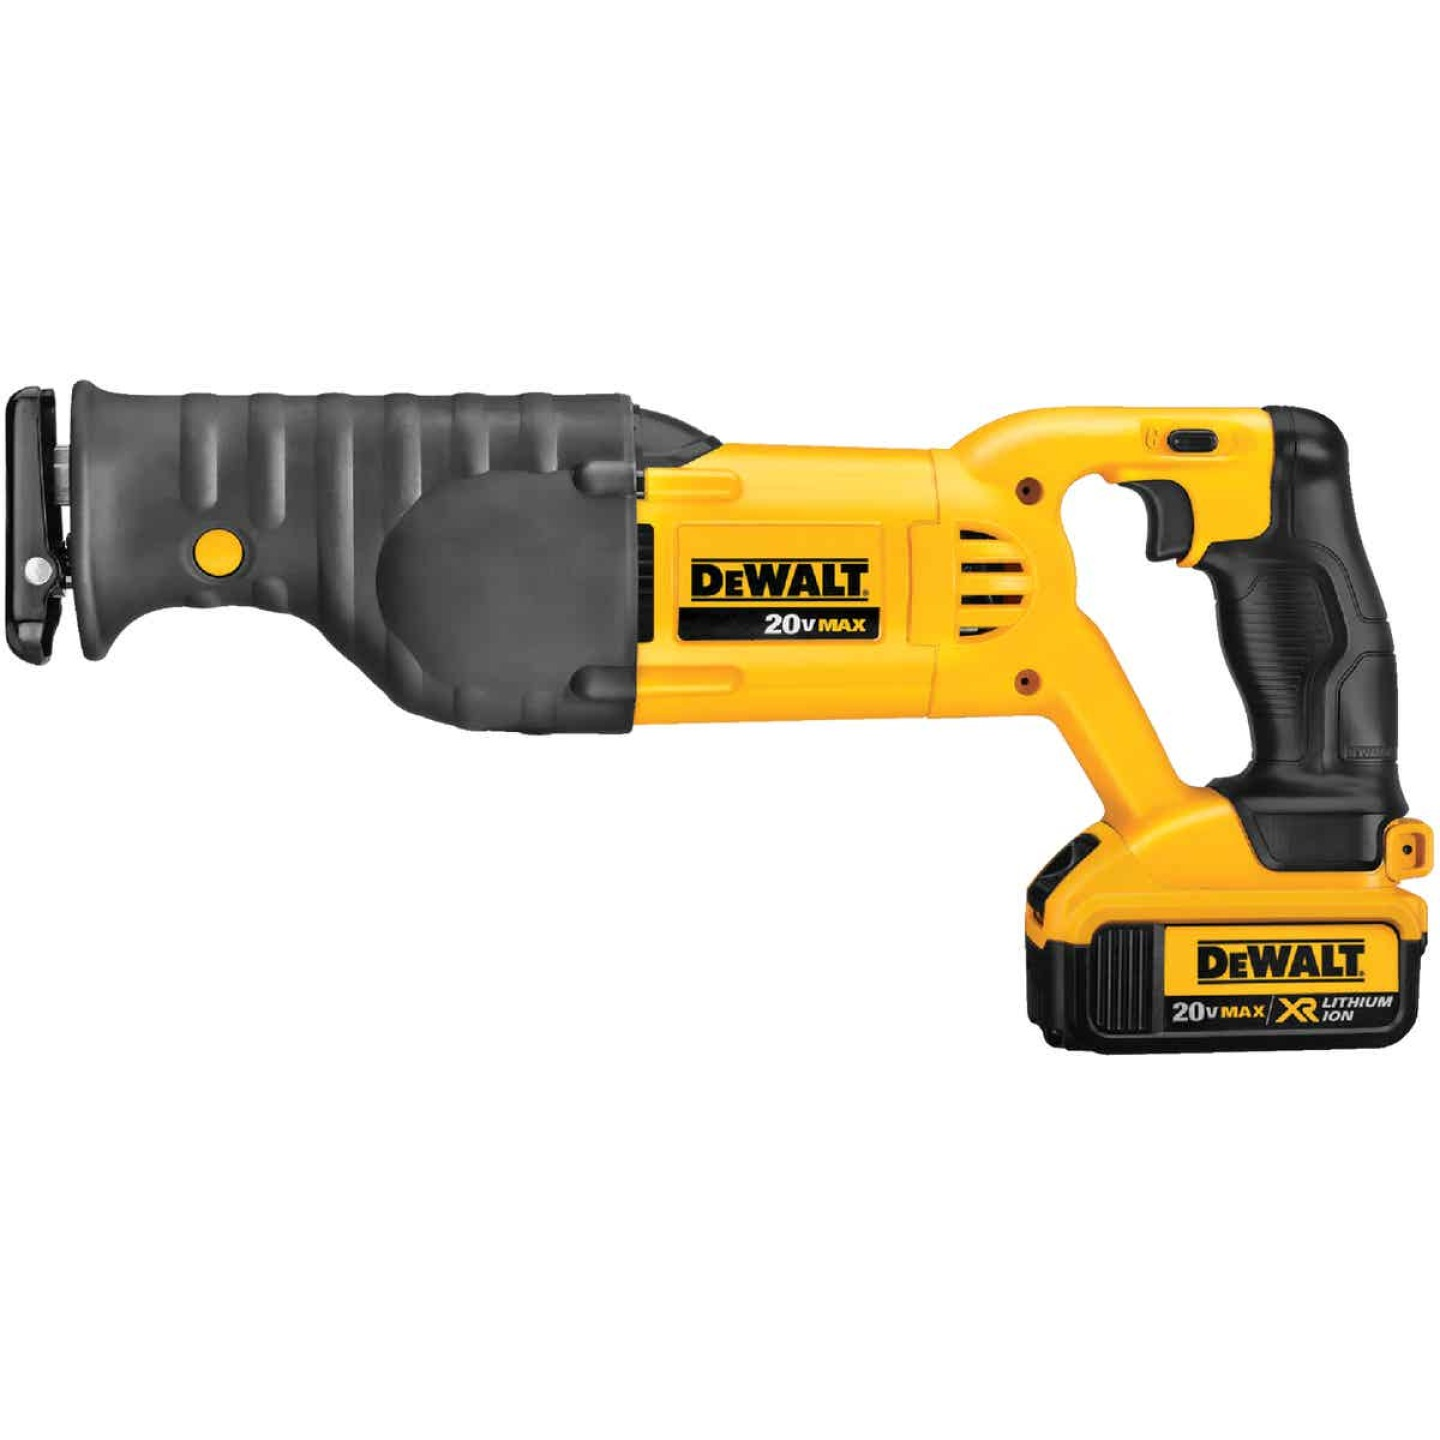 DeWalt 20 Volt MAX Lithium-Ion Cordless Reciprocating Saw Kit Image 6